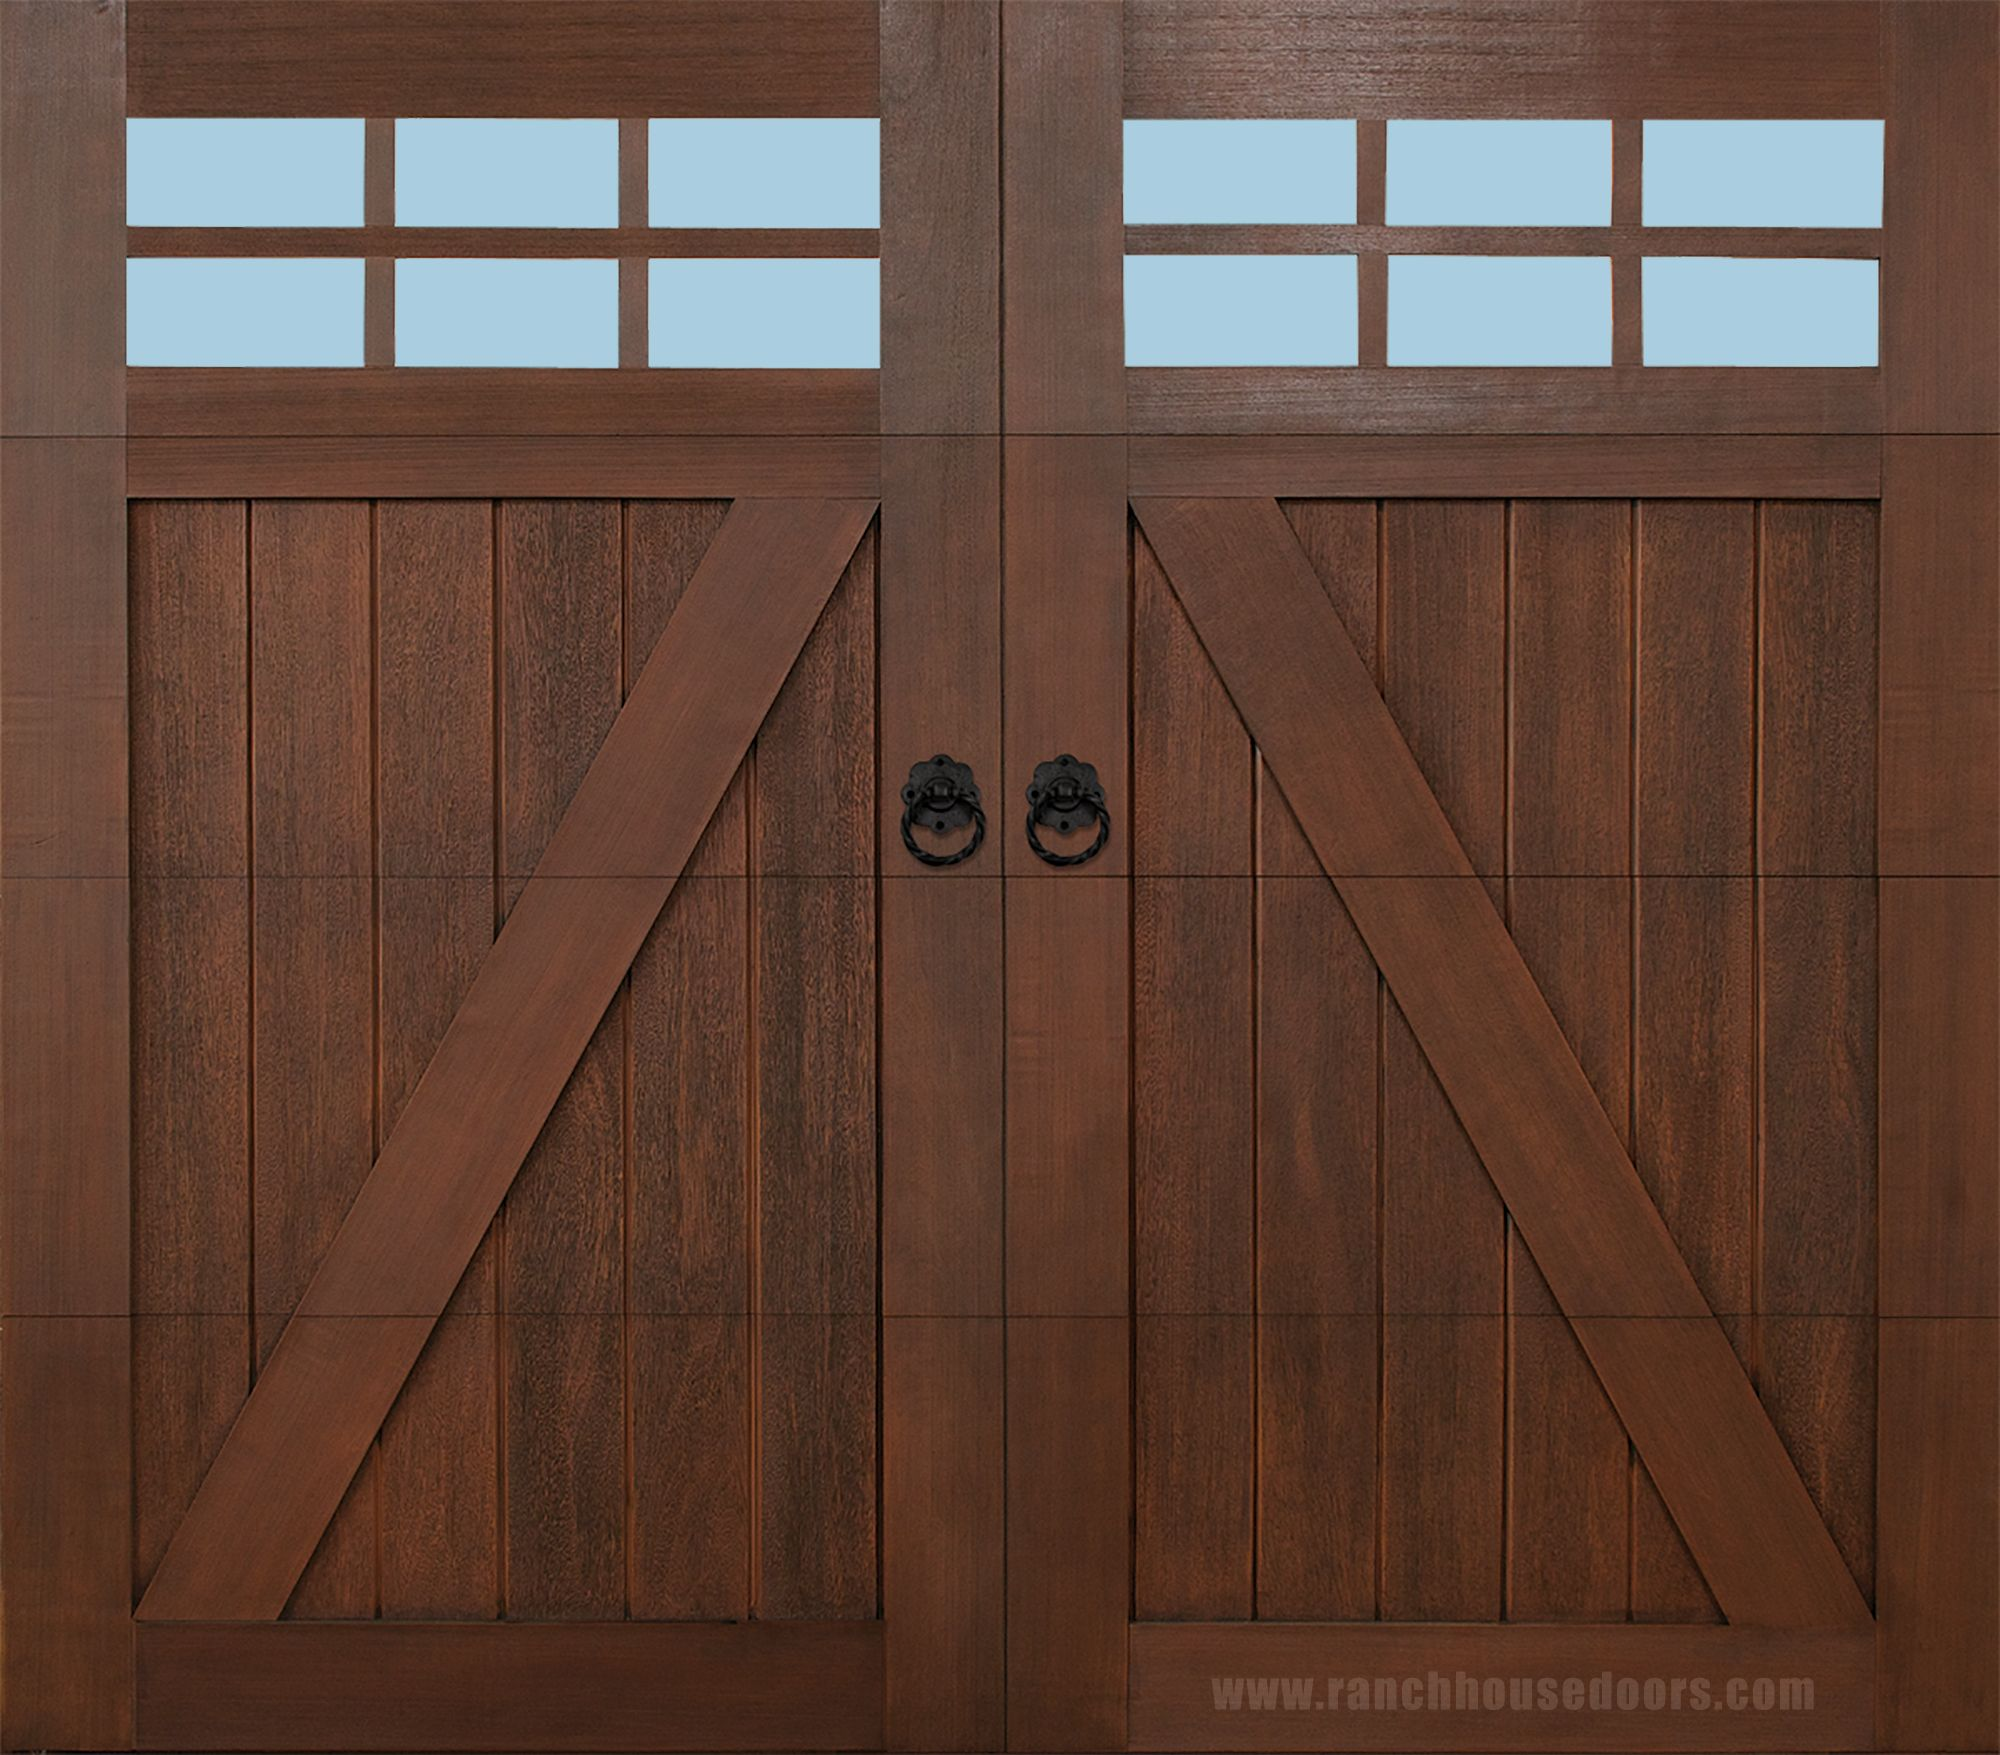 Ranch House Doors Model 501 Elements Collection faux wood garage door with FH-511 Ring  sc 1 st  Pinterest & Ranch House Doors Model 501 Elements Collection faux wood garage ...